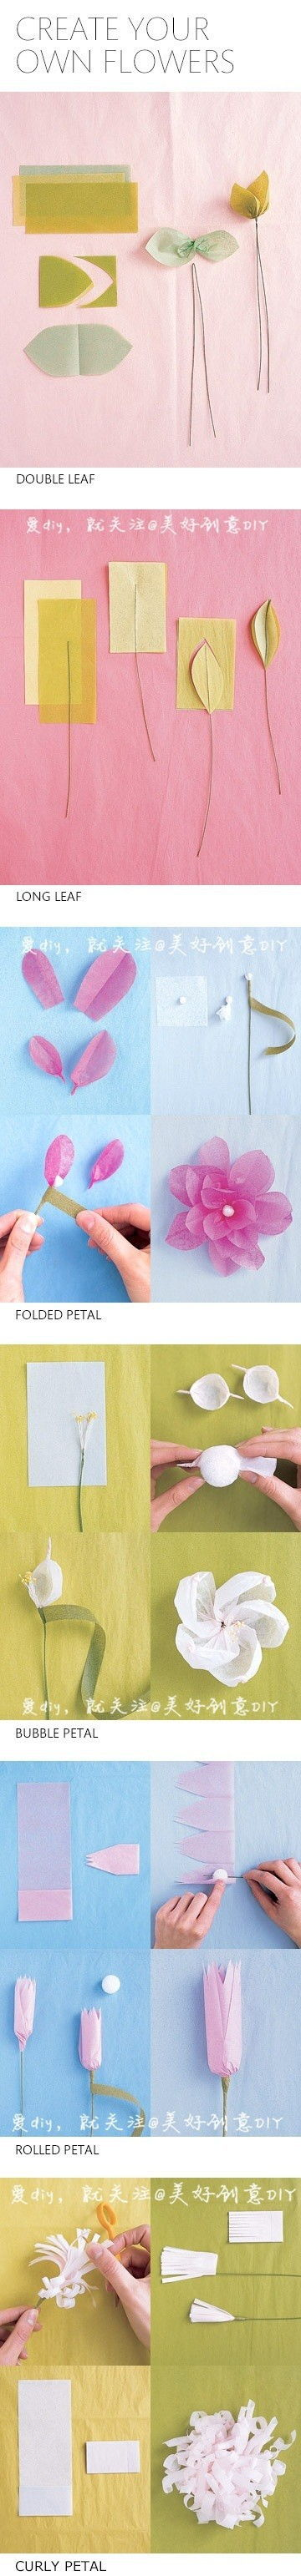 Six ways to make Beautiful Flowers step by step DIY tutorial instructions